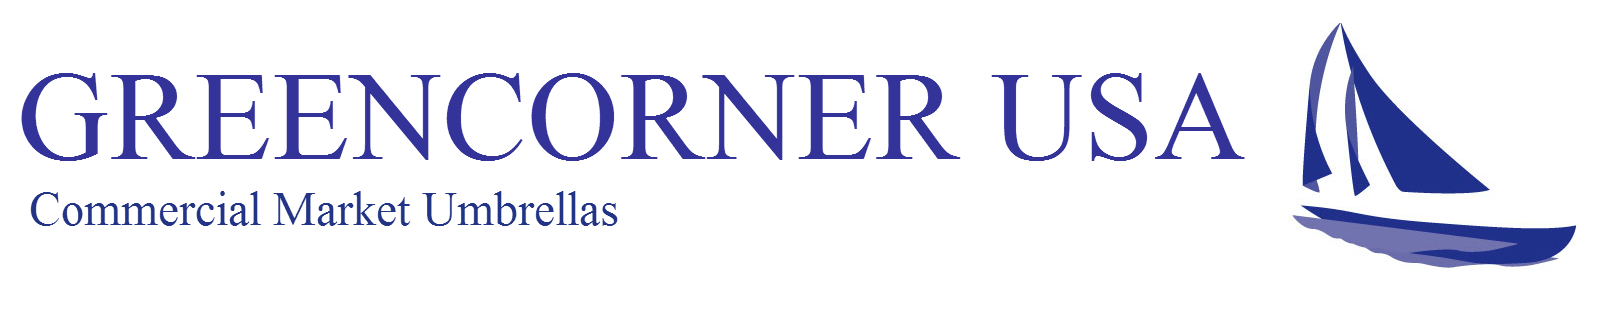 Greencorner USA Logo